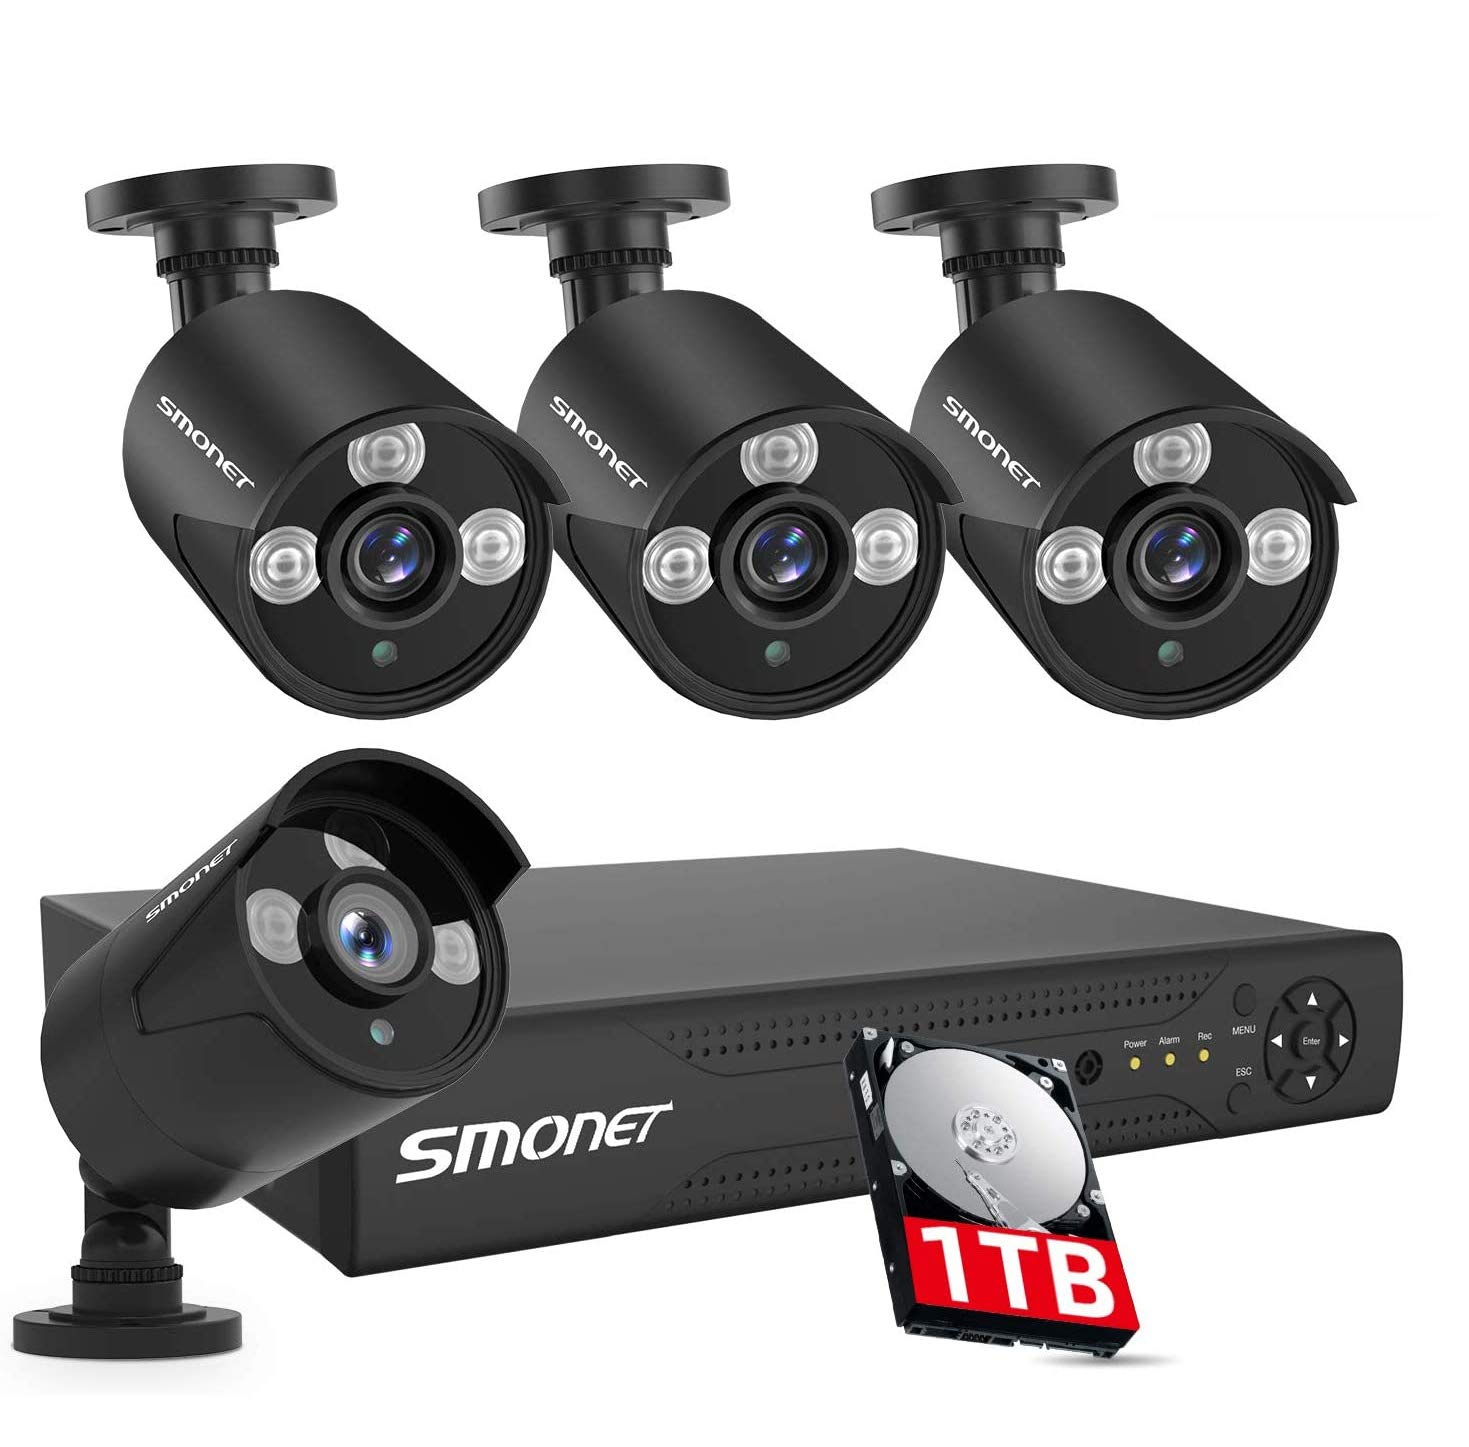 【8CH Expandable】 SMONET Security Camera Systems,8CH 5MP Home Security Camera Systems (1TB Hard Drive),Wired Security Systems with 4pcs 1080P Indoor Outdoor Security Cameras,IP66 Waterproof,Remote View